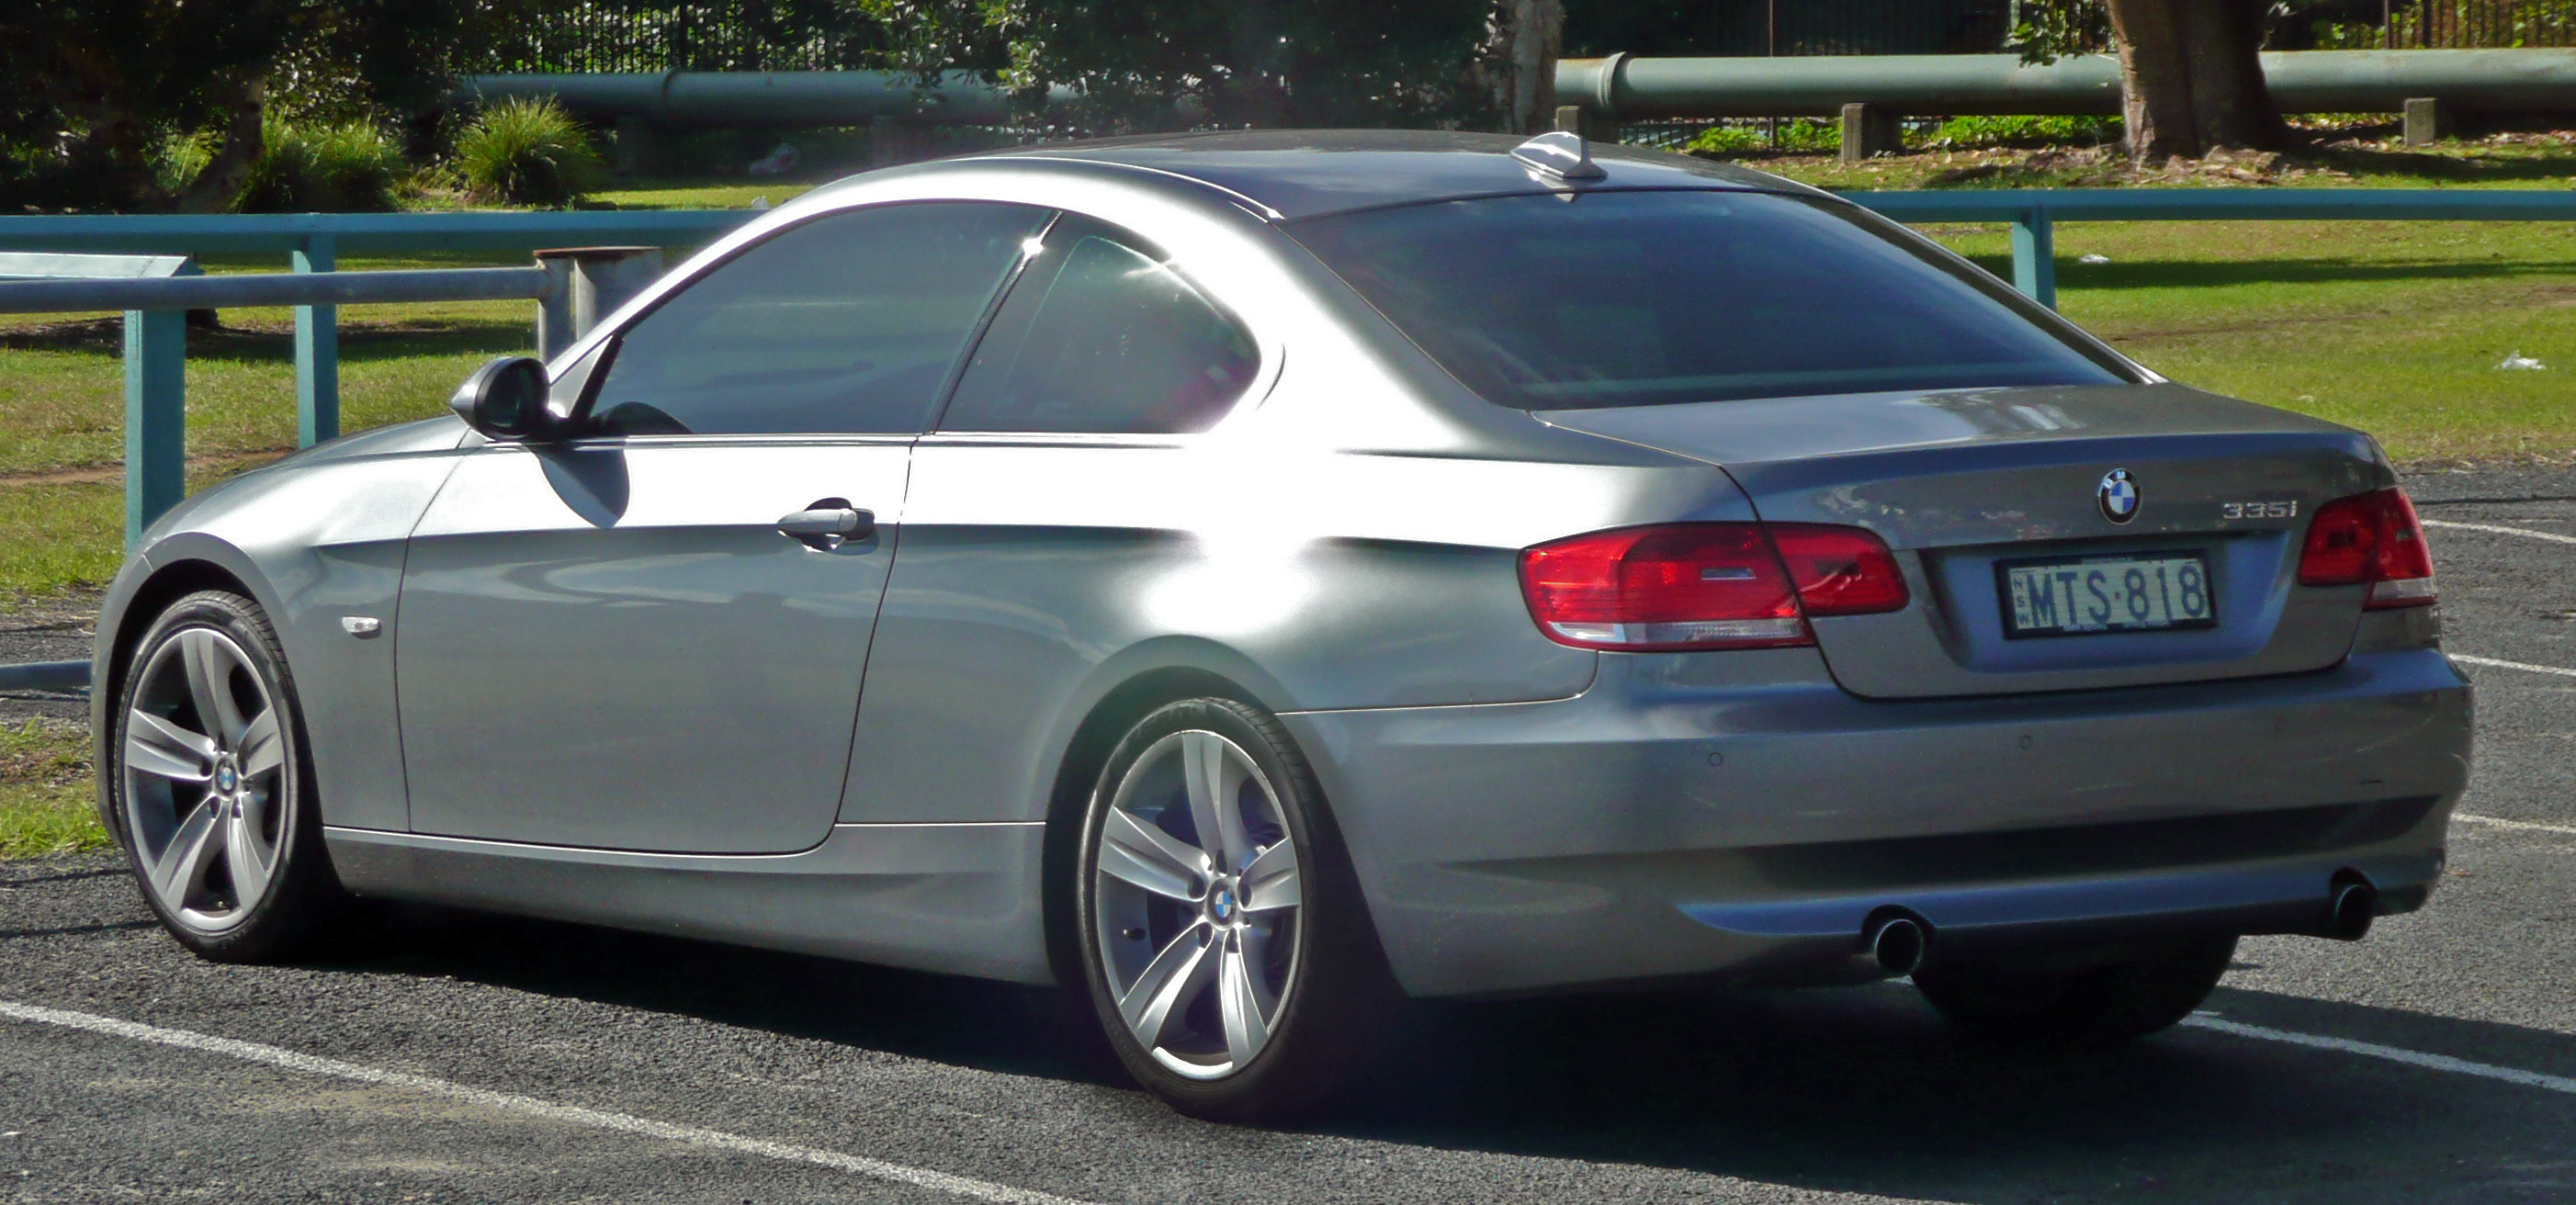 File:2006-2010 BMW 335i (E92) coupe 01.jpg - Wikimedia Commons